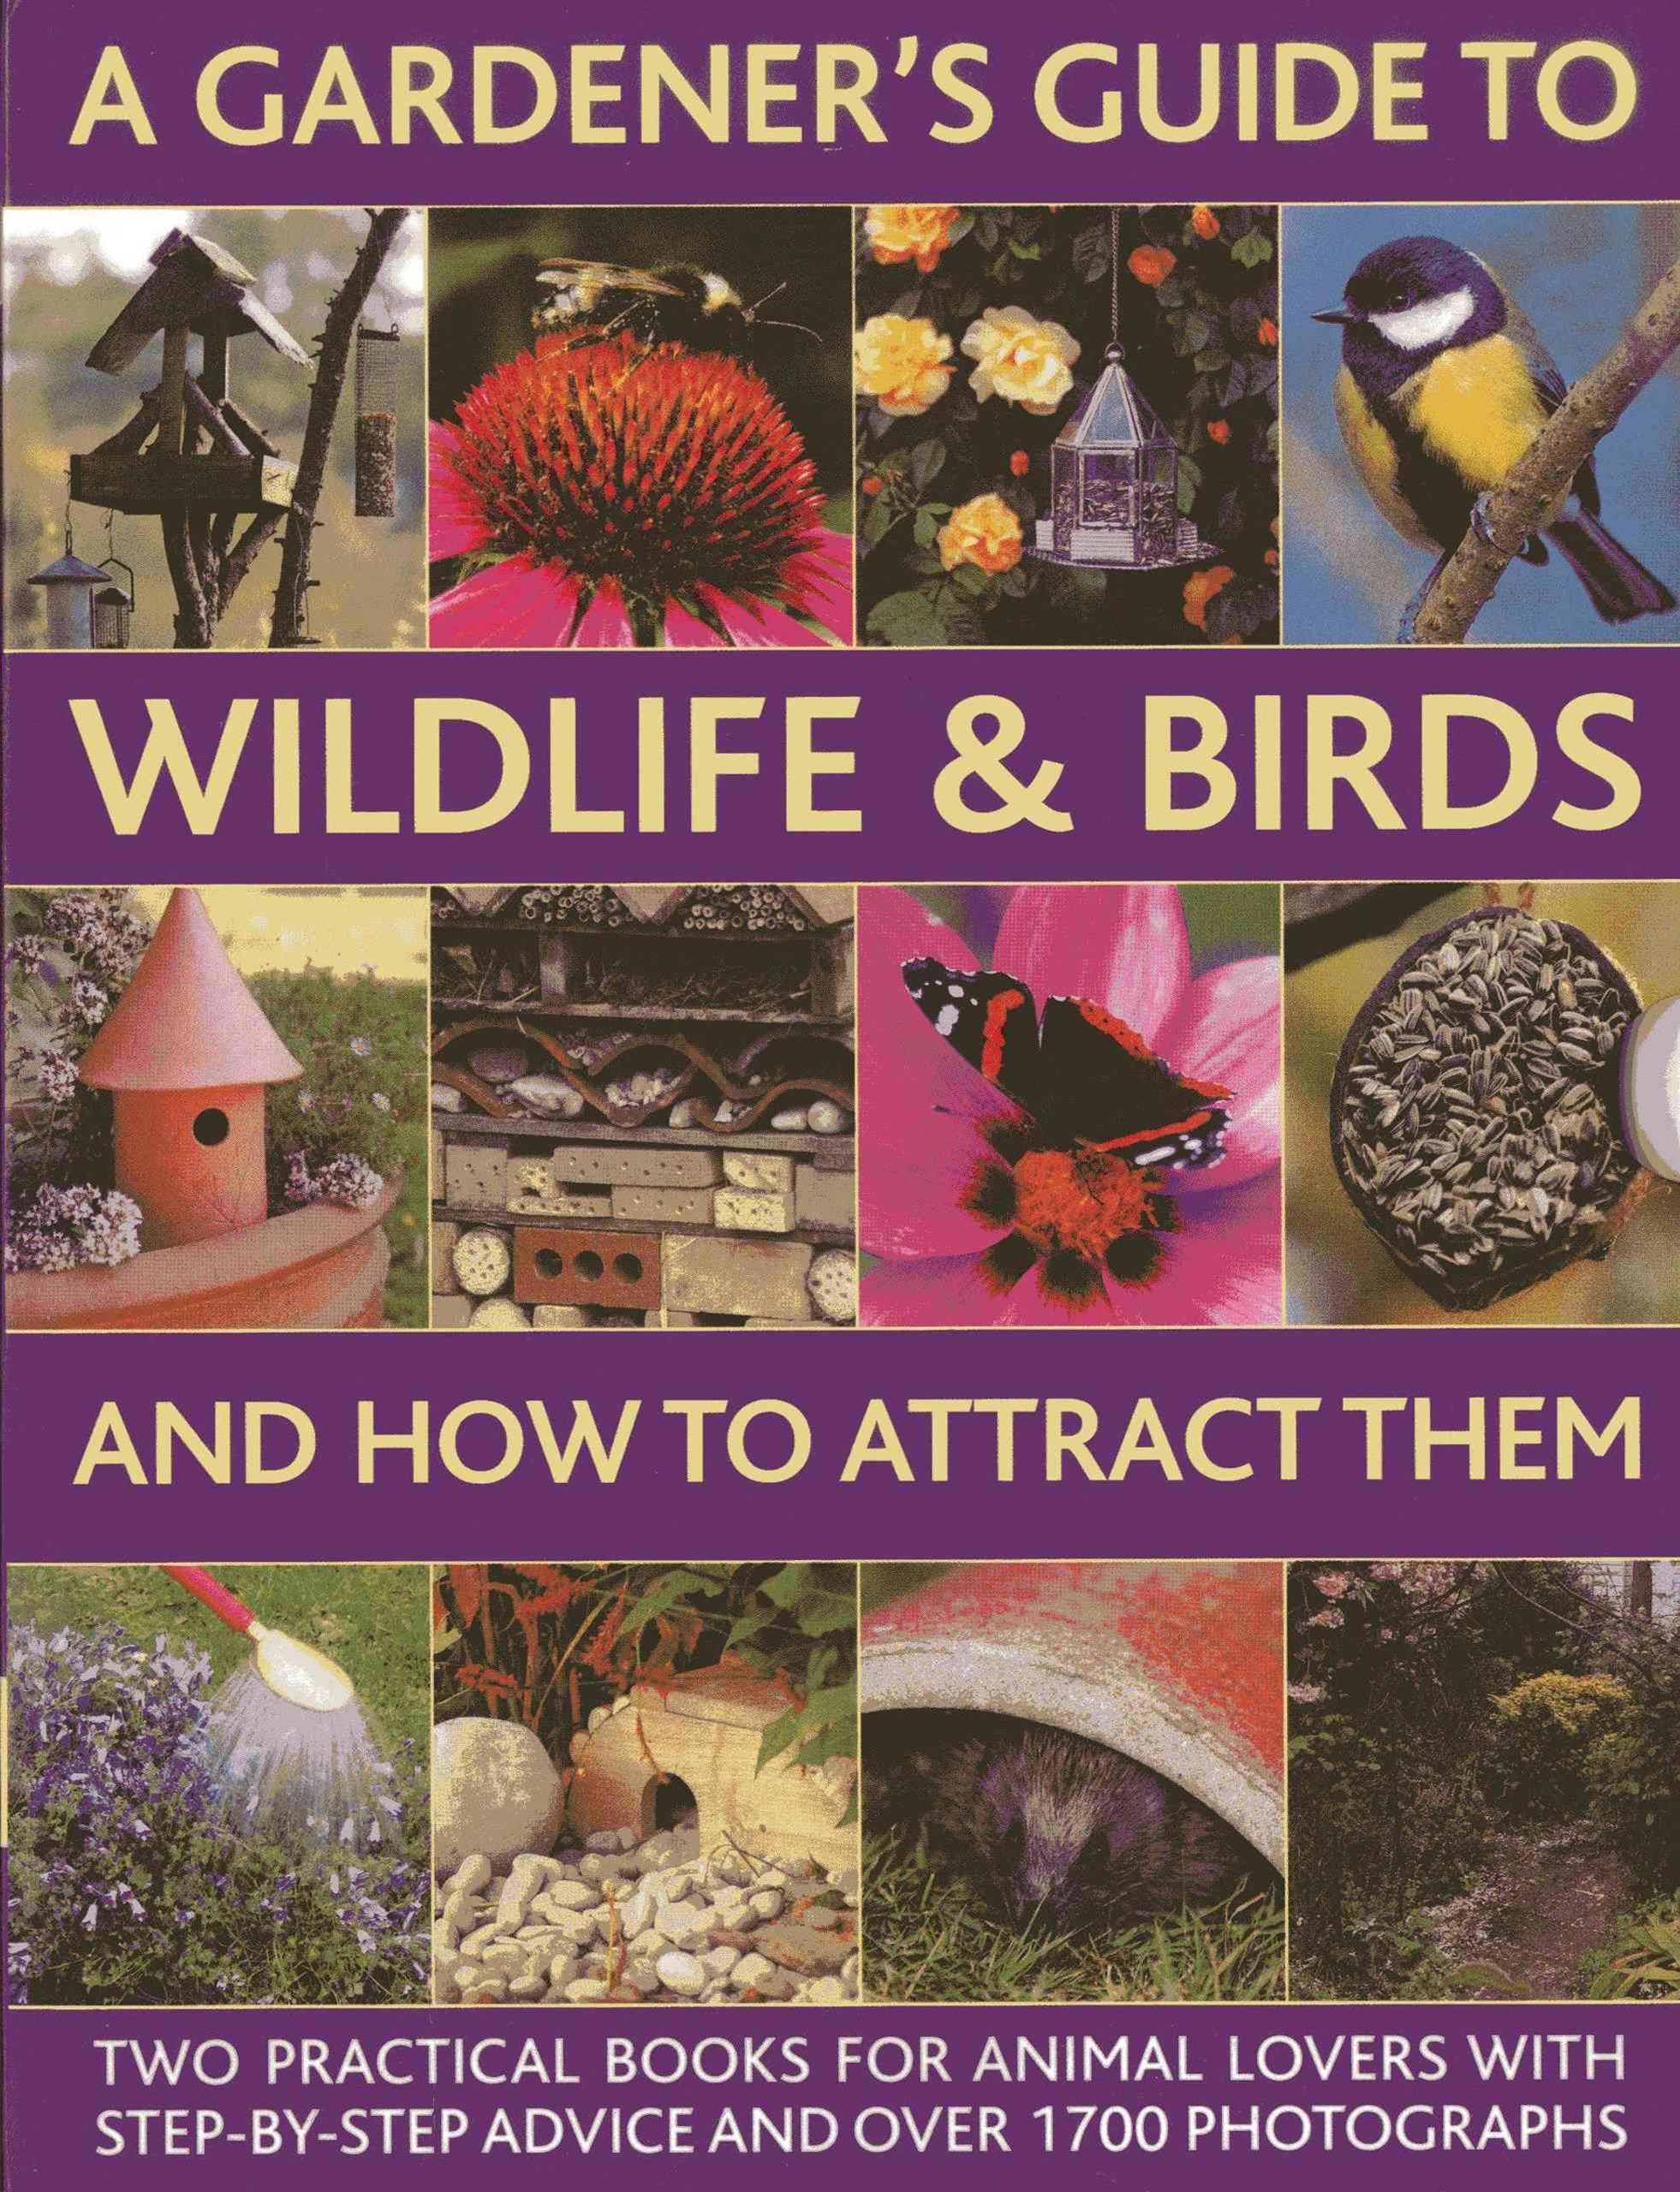 Gardener's Guide to Wildlife & Birds and How to Attract Them